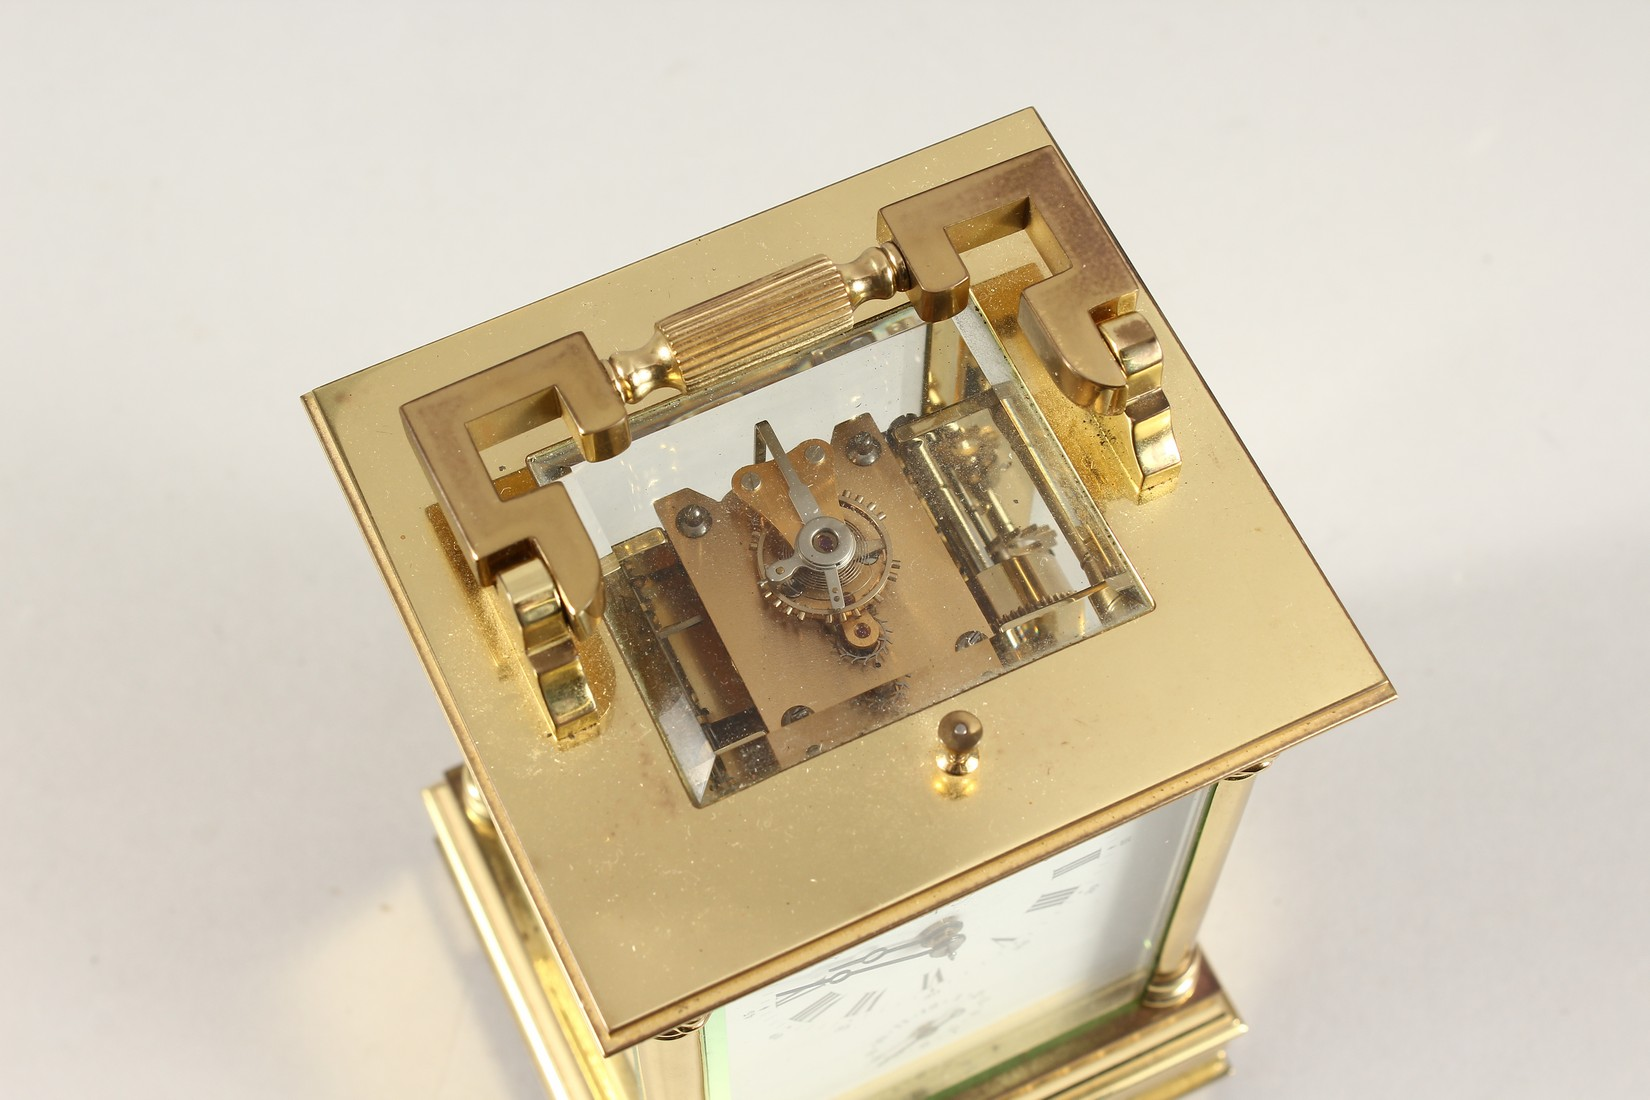 A GOOD ASPREYS BRASS CARRIAGE CLOCK with alarm. 6ins high. - Image 5 of 7